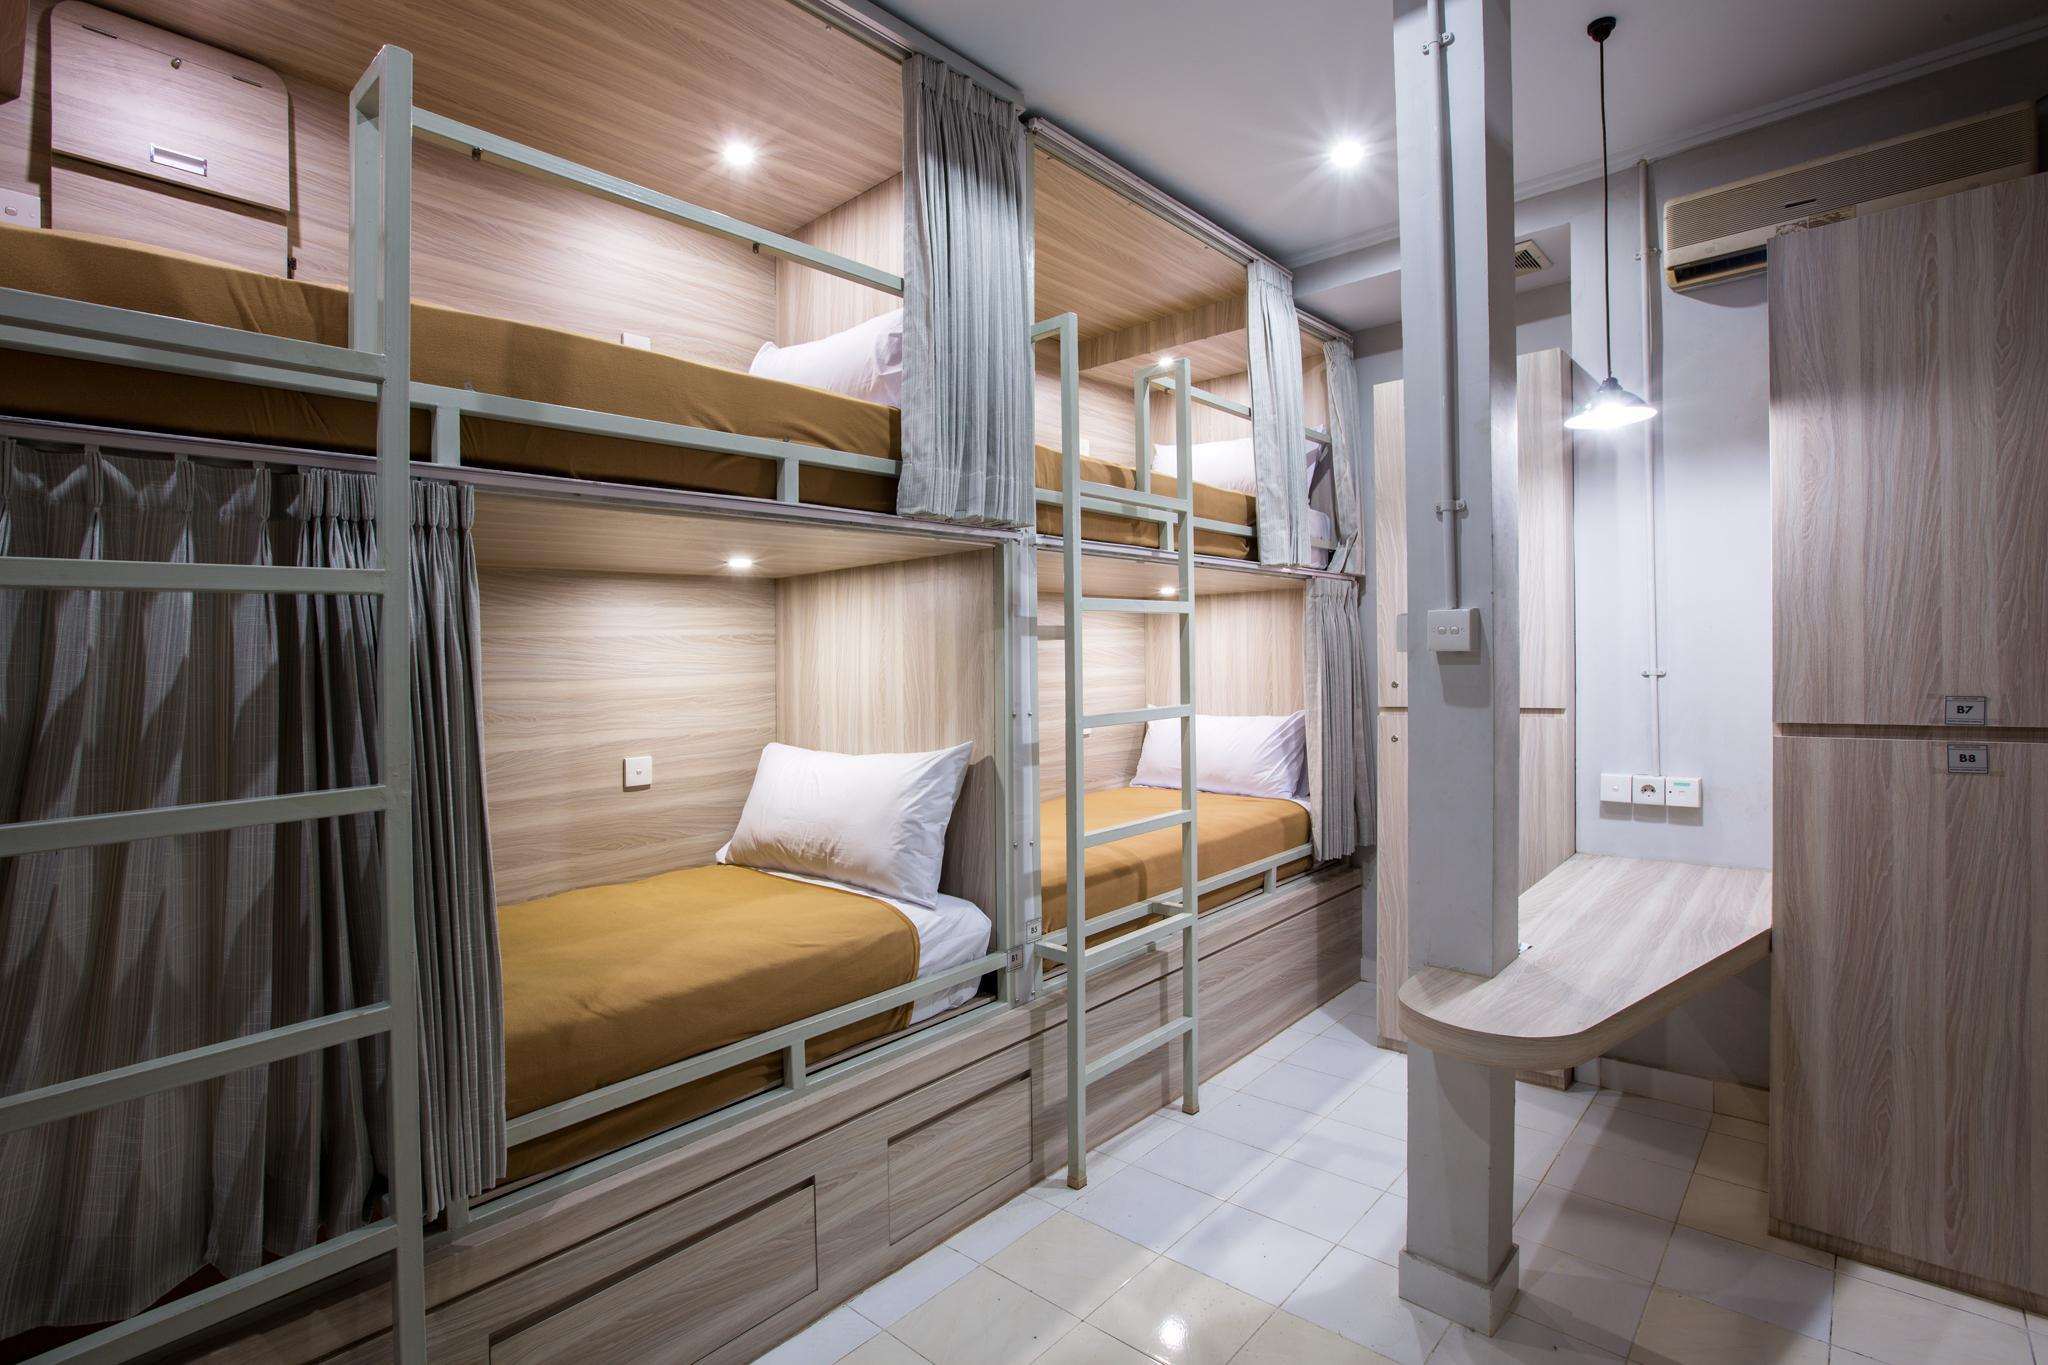 Single Bed - Dormitory Room